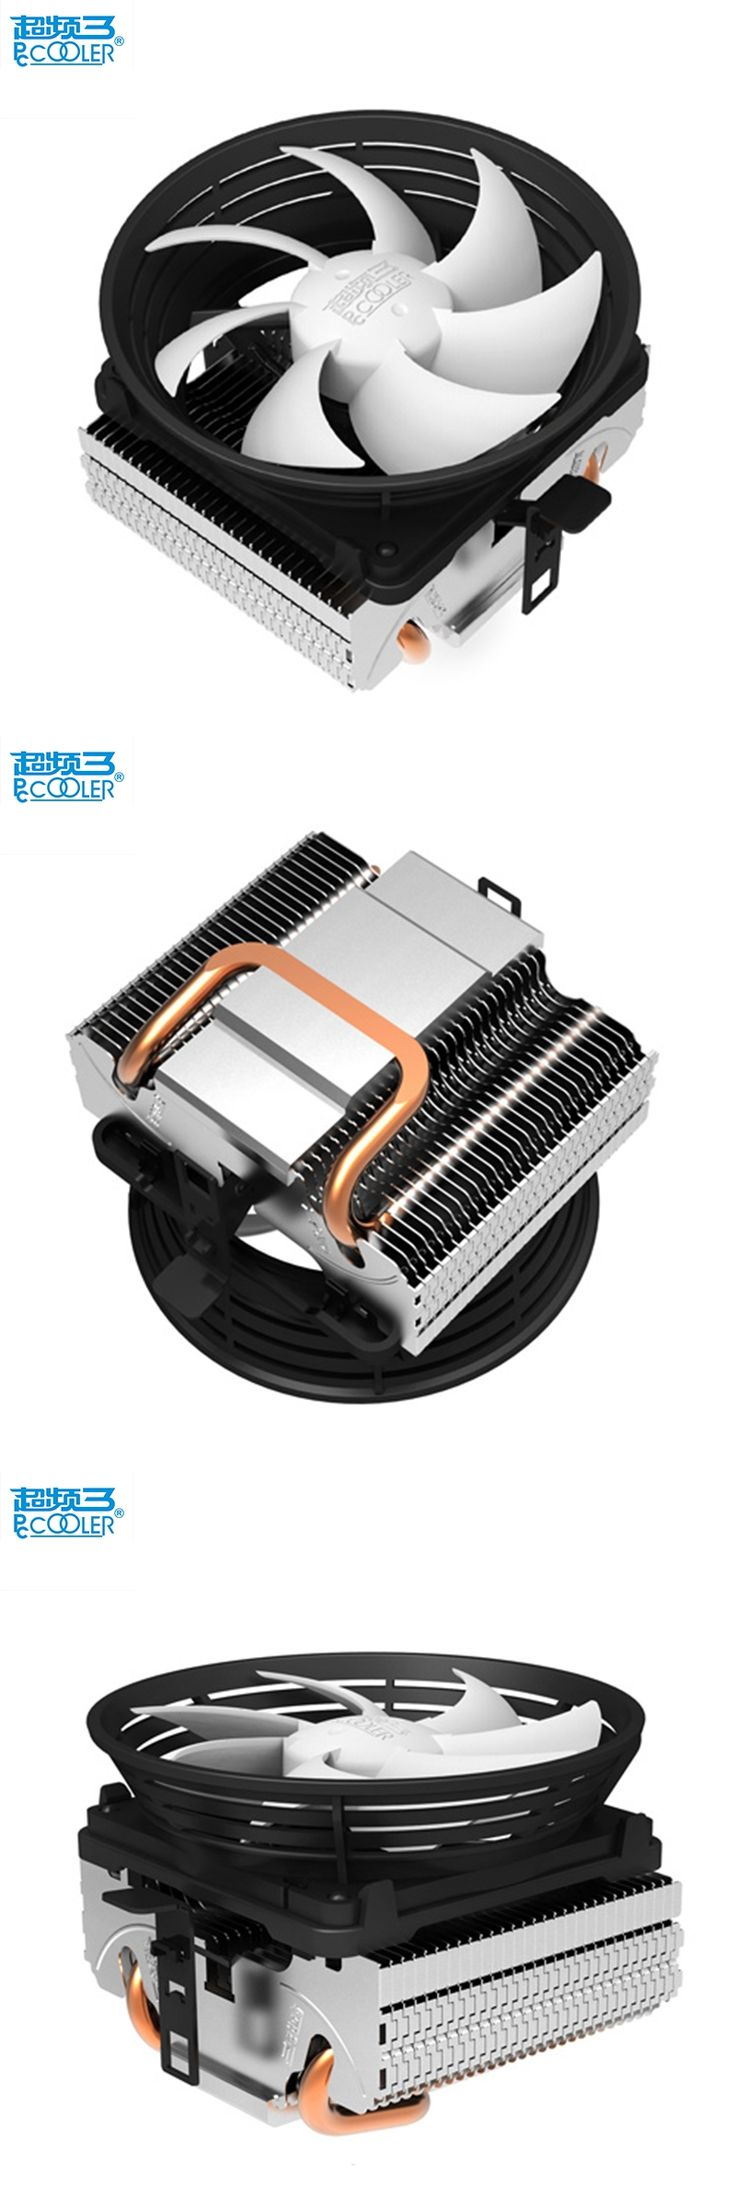 Pccooler V2 pure copper heatpipes silent 10cm/100mm cpu fan for AMD Intel 775 1150 1156 1155 cpu cooling radiator fan cpu cooler